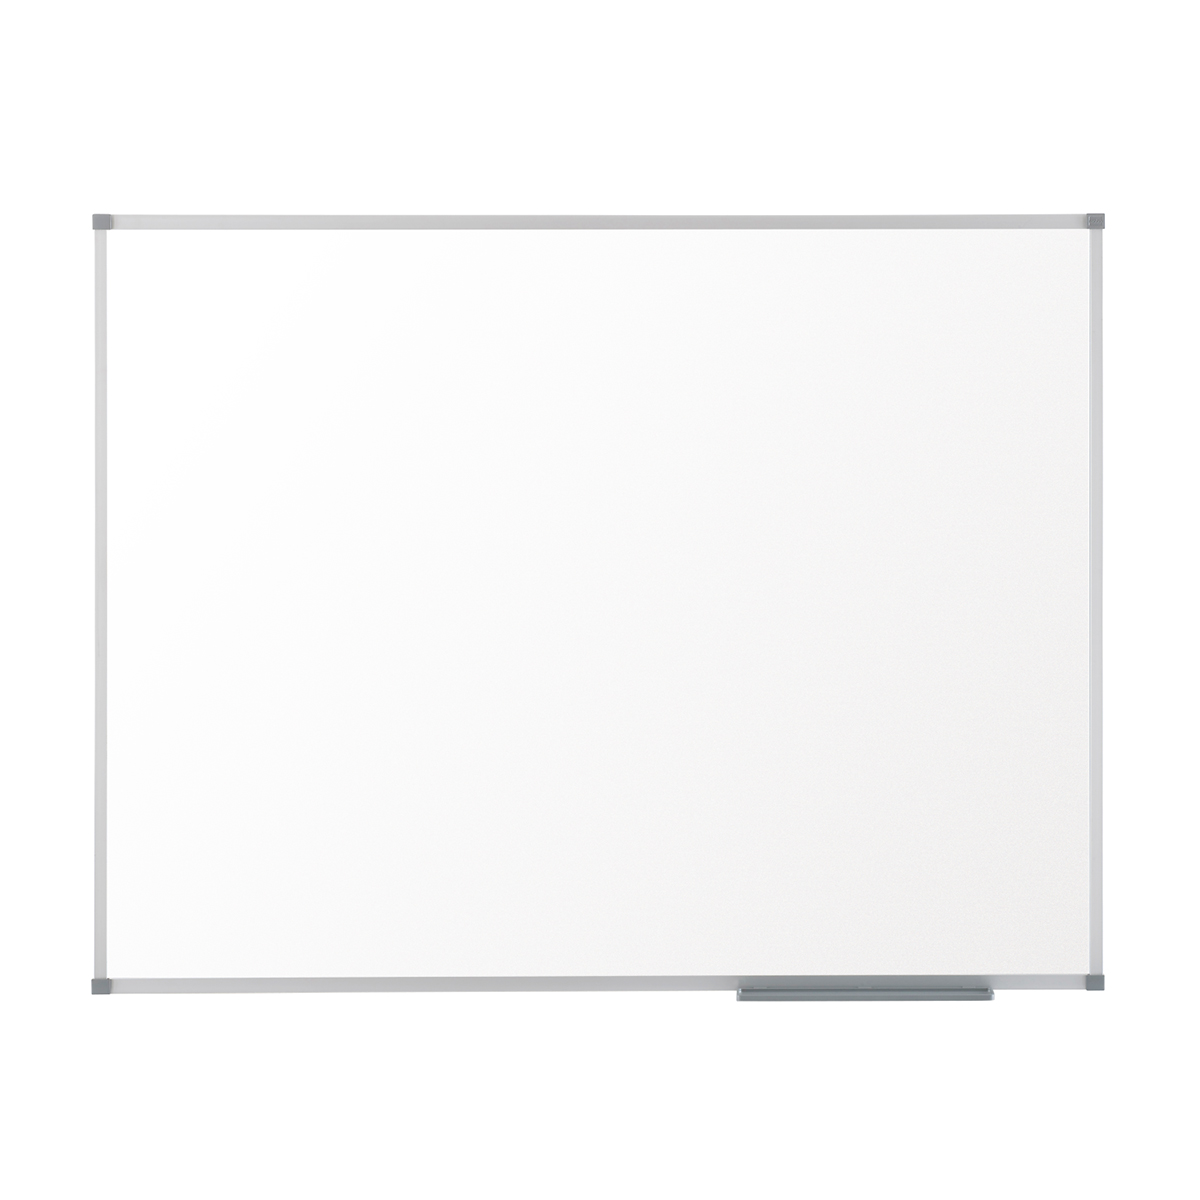 Nobo 1905210 Basic Steel Magnetic Whiteboard 900 x 600mm